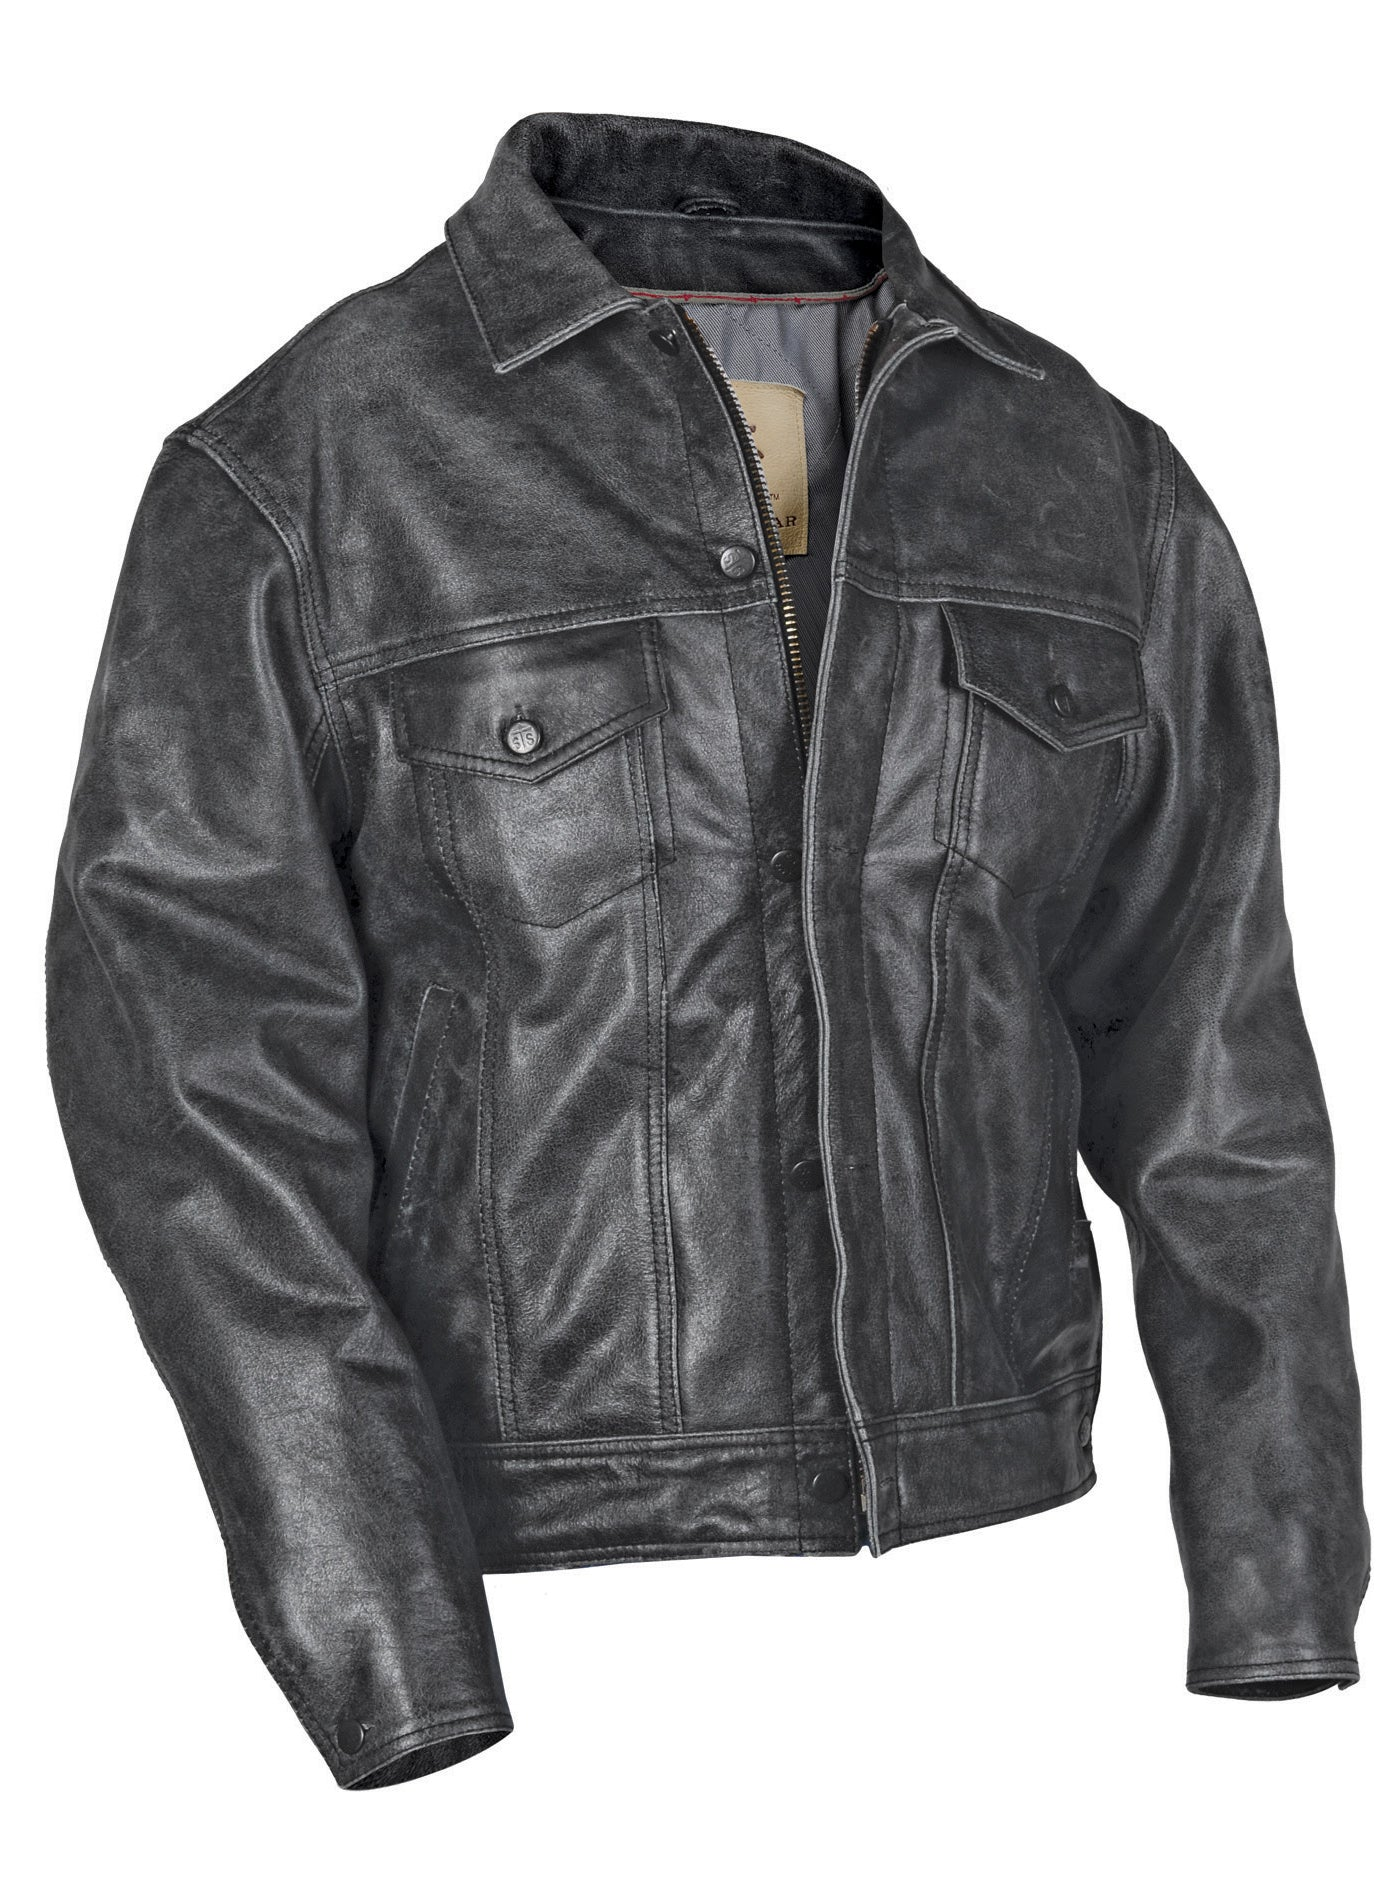 rug jacket zappos at free men shipped rugged coats leather zso outerwear cl